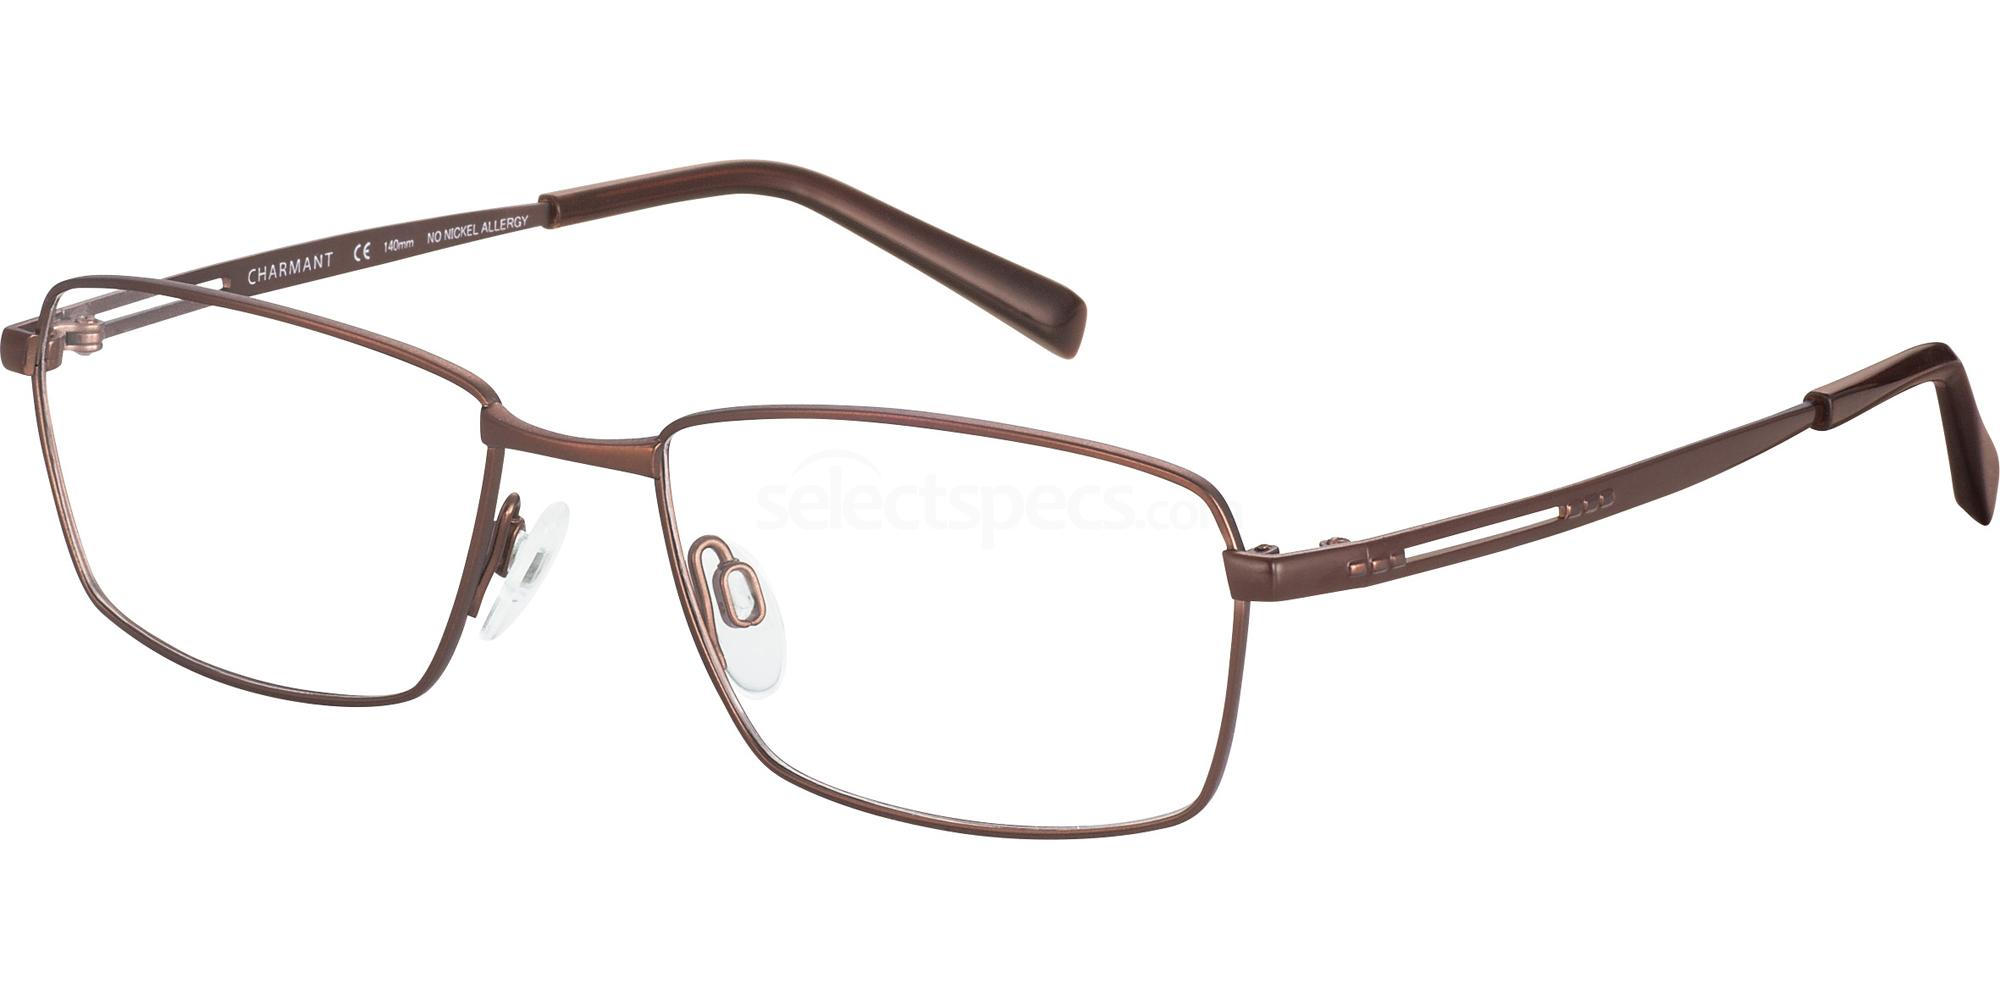 BR CH11434 Glasses, Charmant Titanium Perfection